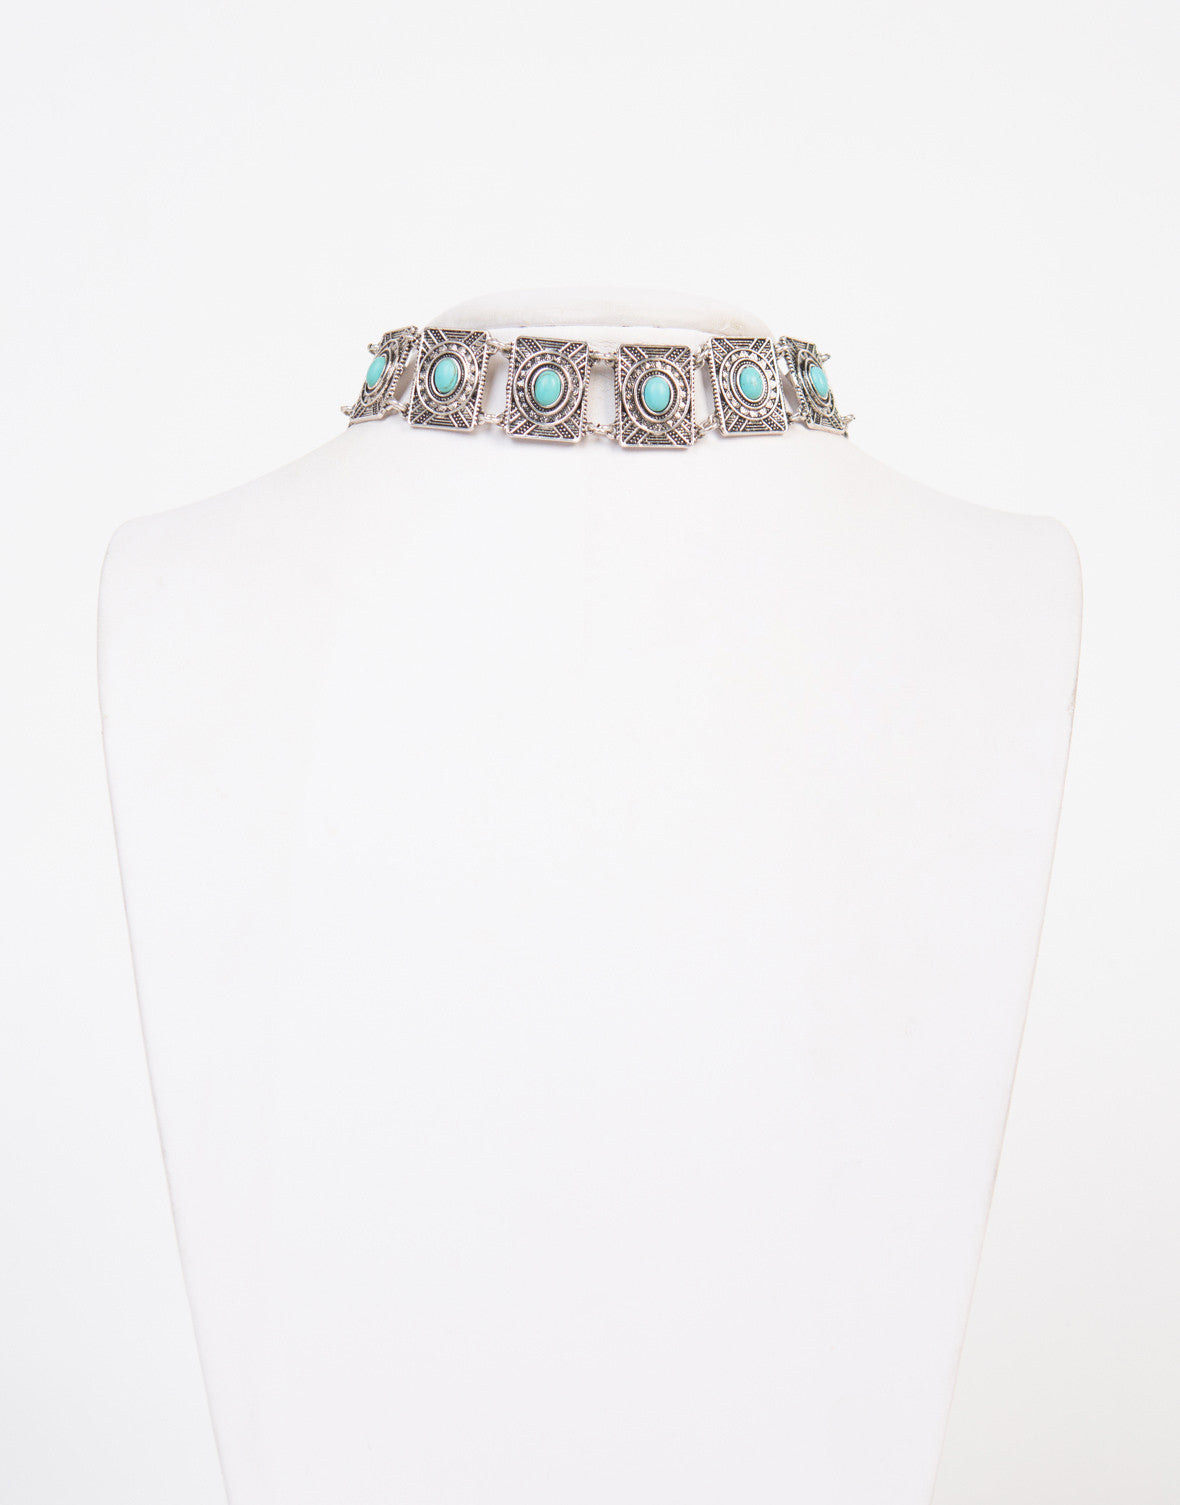 Stone Centered Choker Necklace